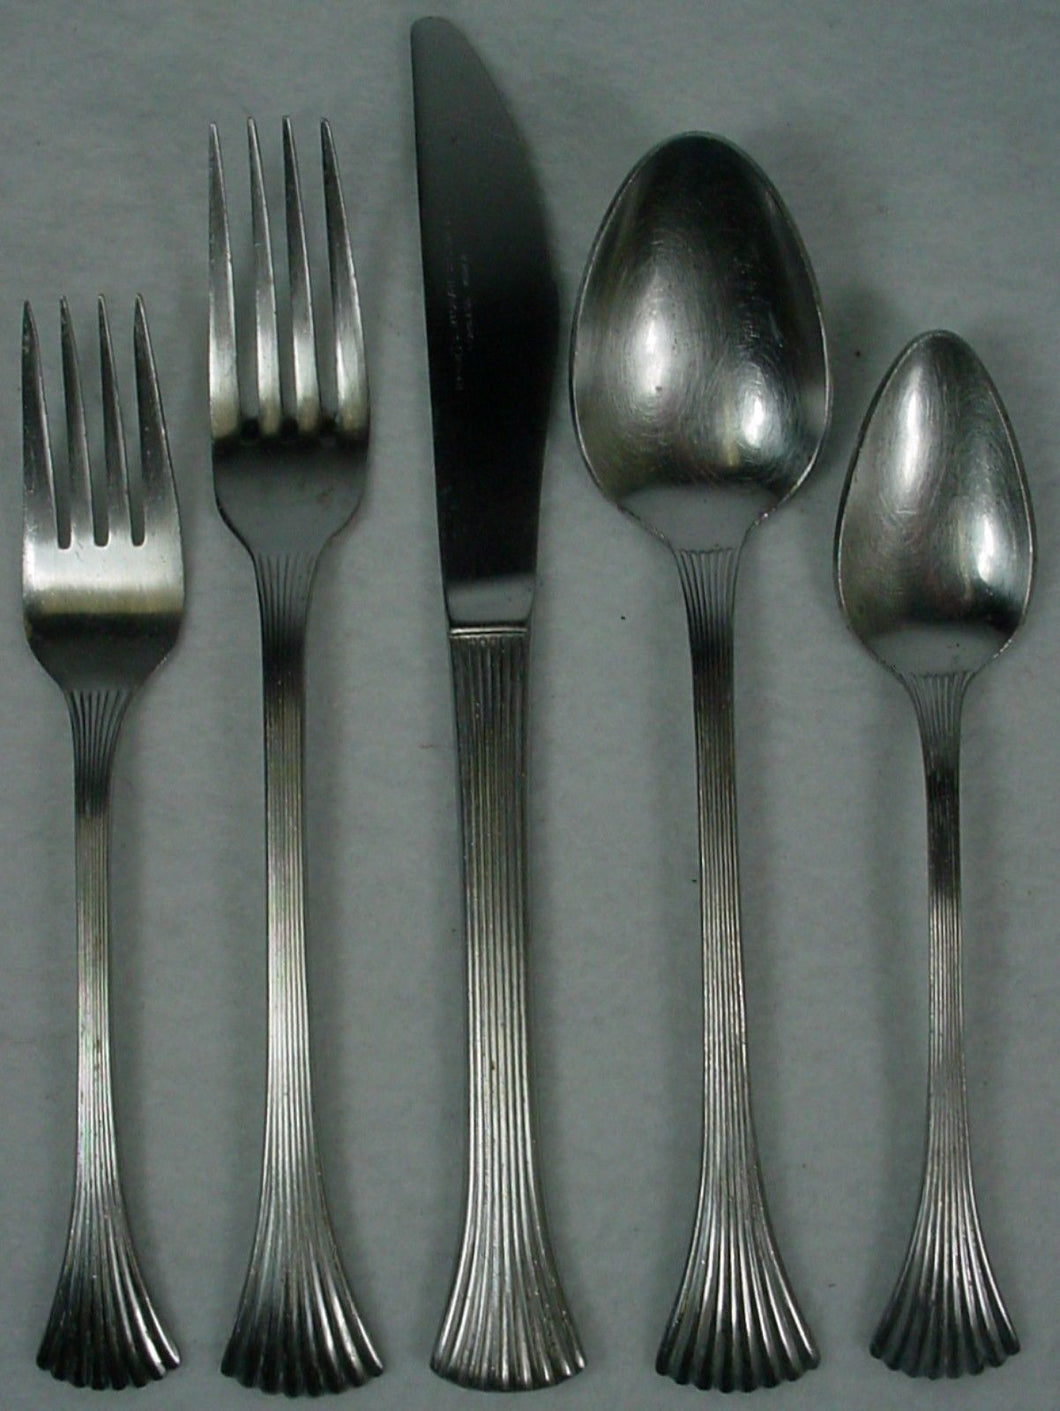 REED & BARTON silver BRETTON WOODS - SHELL stainless 5-pc PLACE SETTING